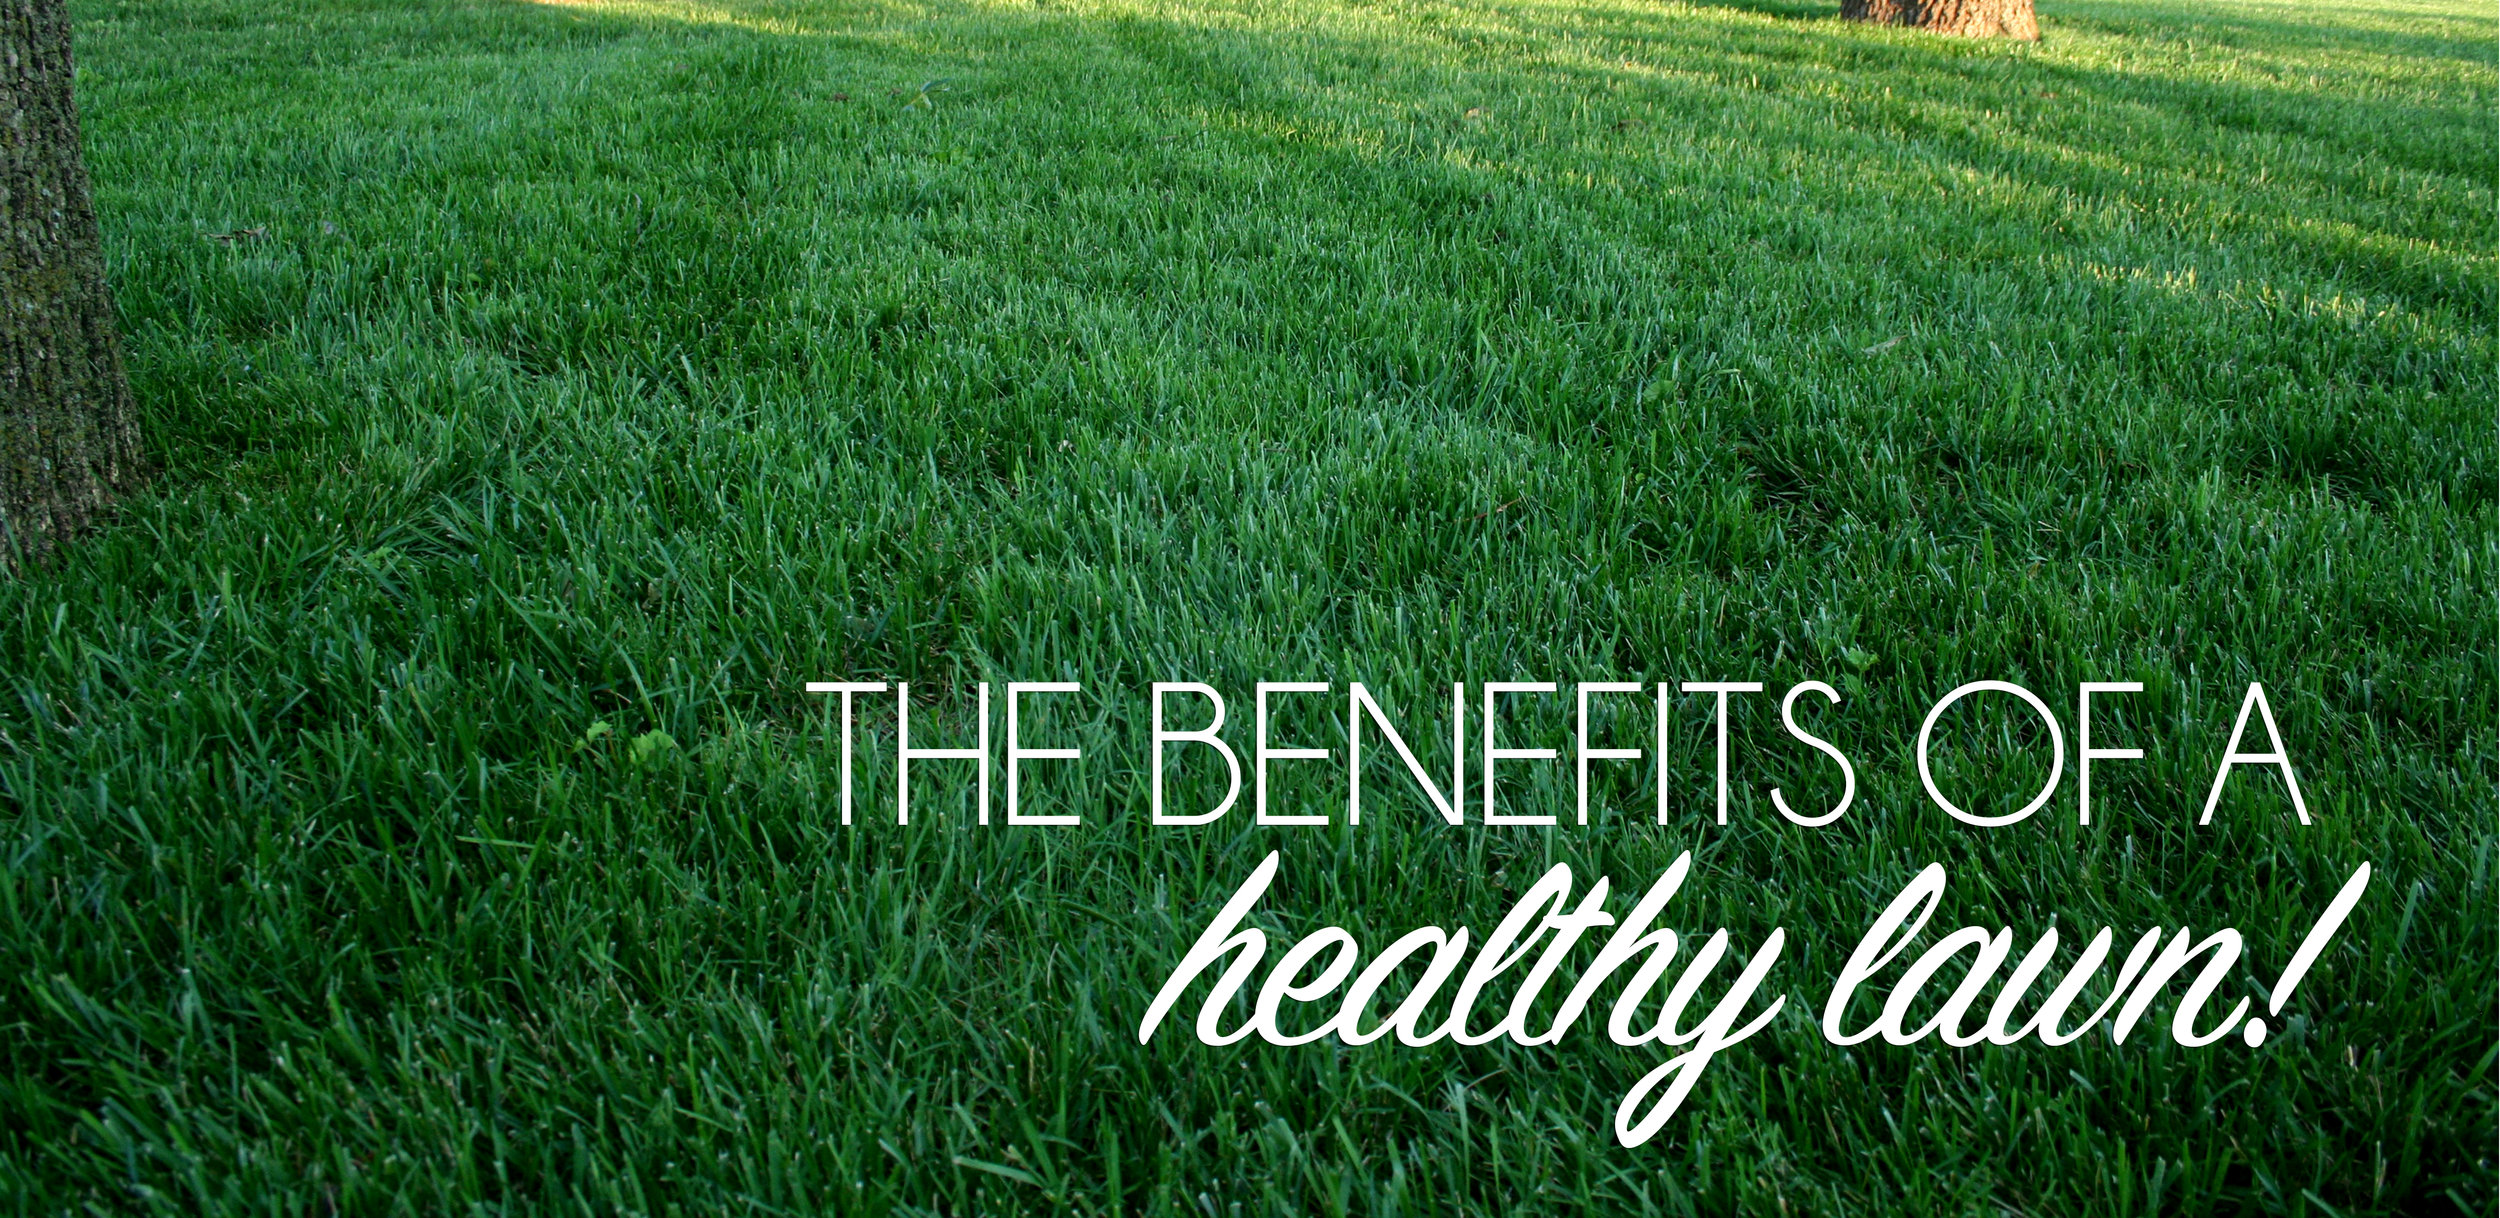 Benefits of a healthy lawn.jpg